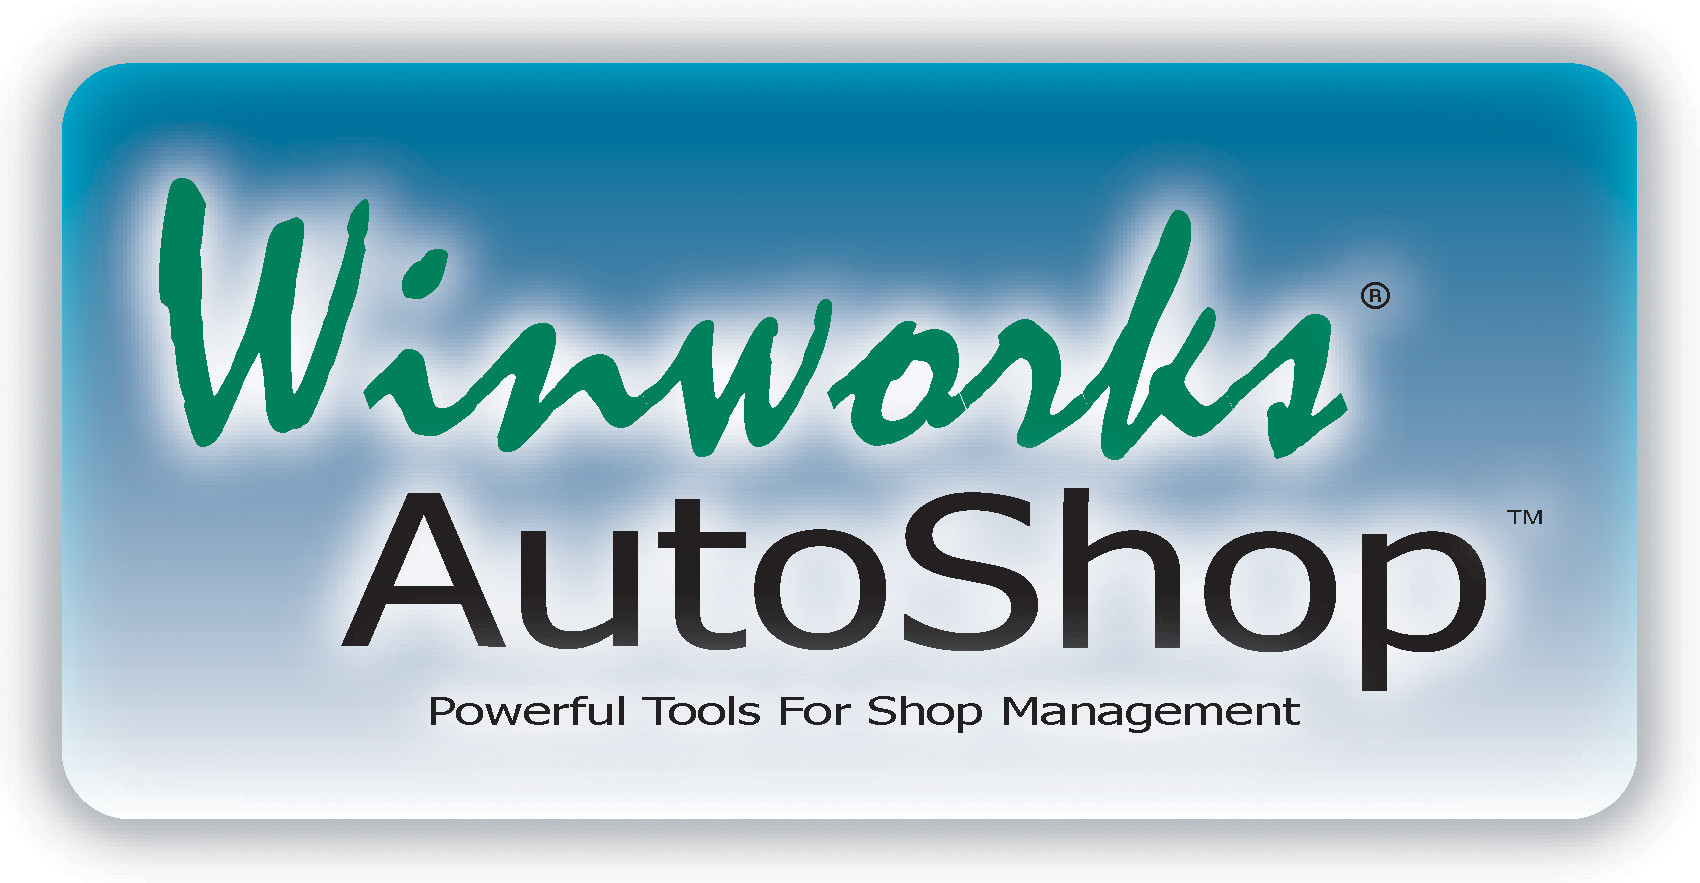 winworks blue button large asw logo | Winworks Autoshop Software